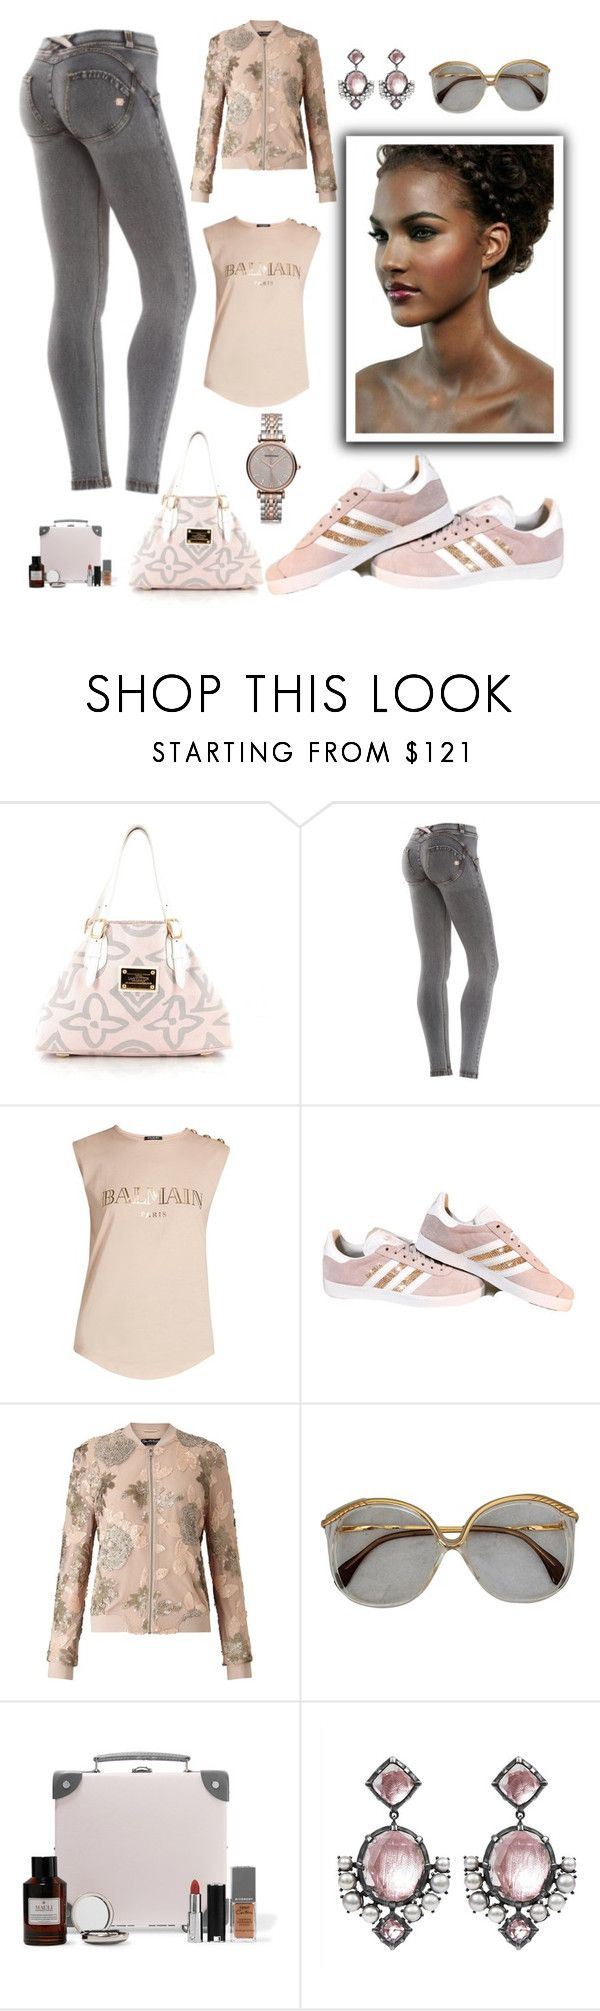 """Simply Beautiful"" by ohitsjanedoe ❤ liked on Polyvore featuring Louis Vuitton, We Are Replay, Balmain, Miss Selfridge, Globe-Trotter, Larkspur & Hawk and Emporio Armani"